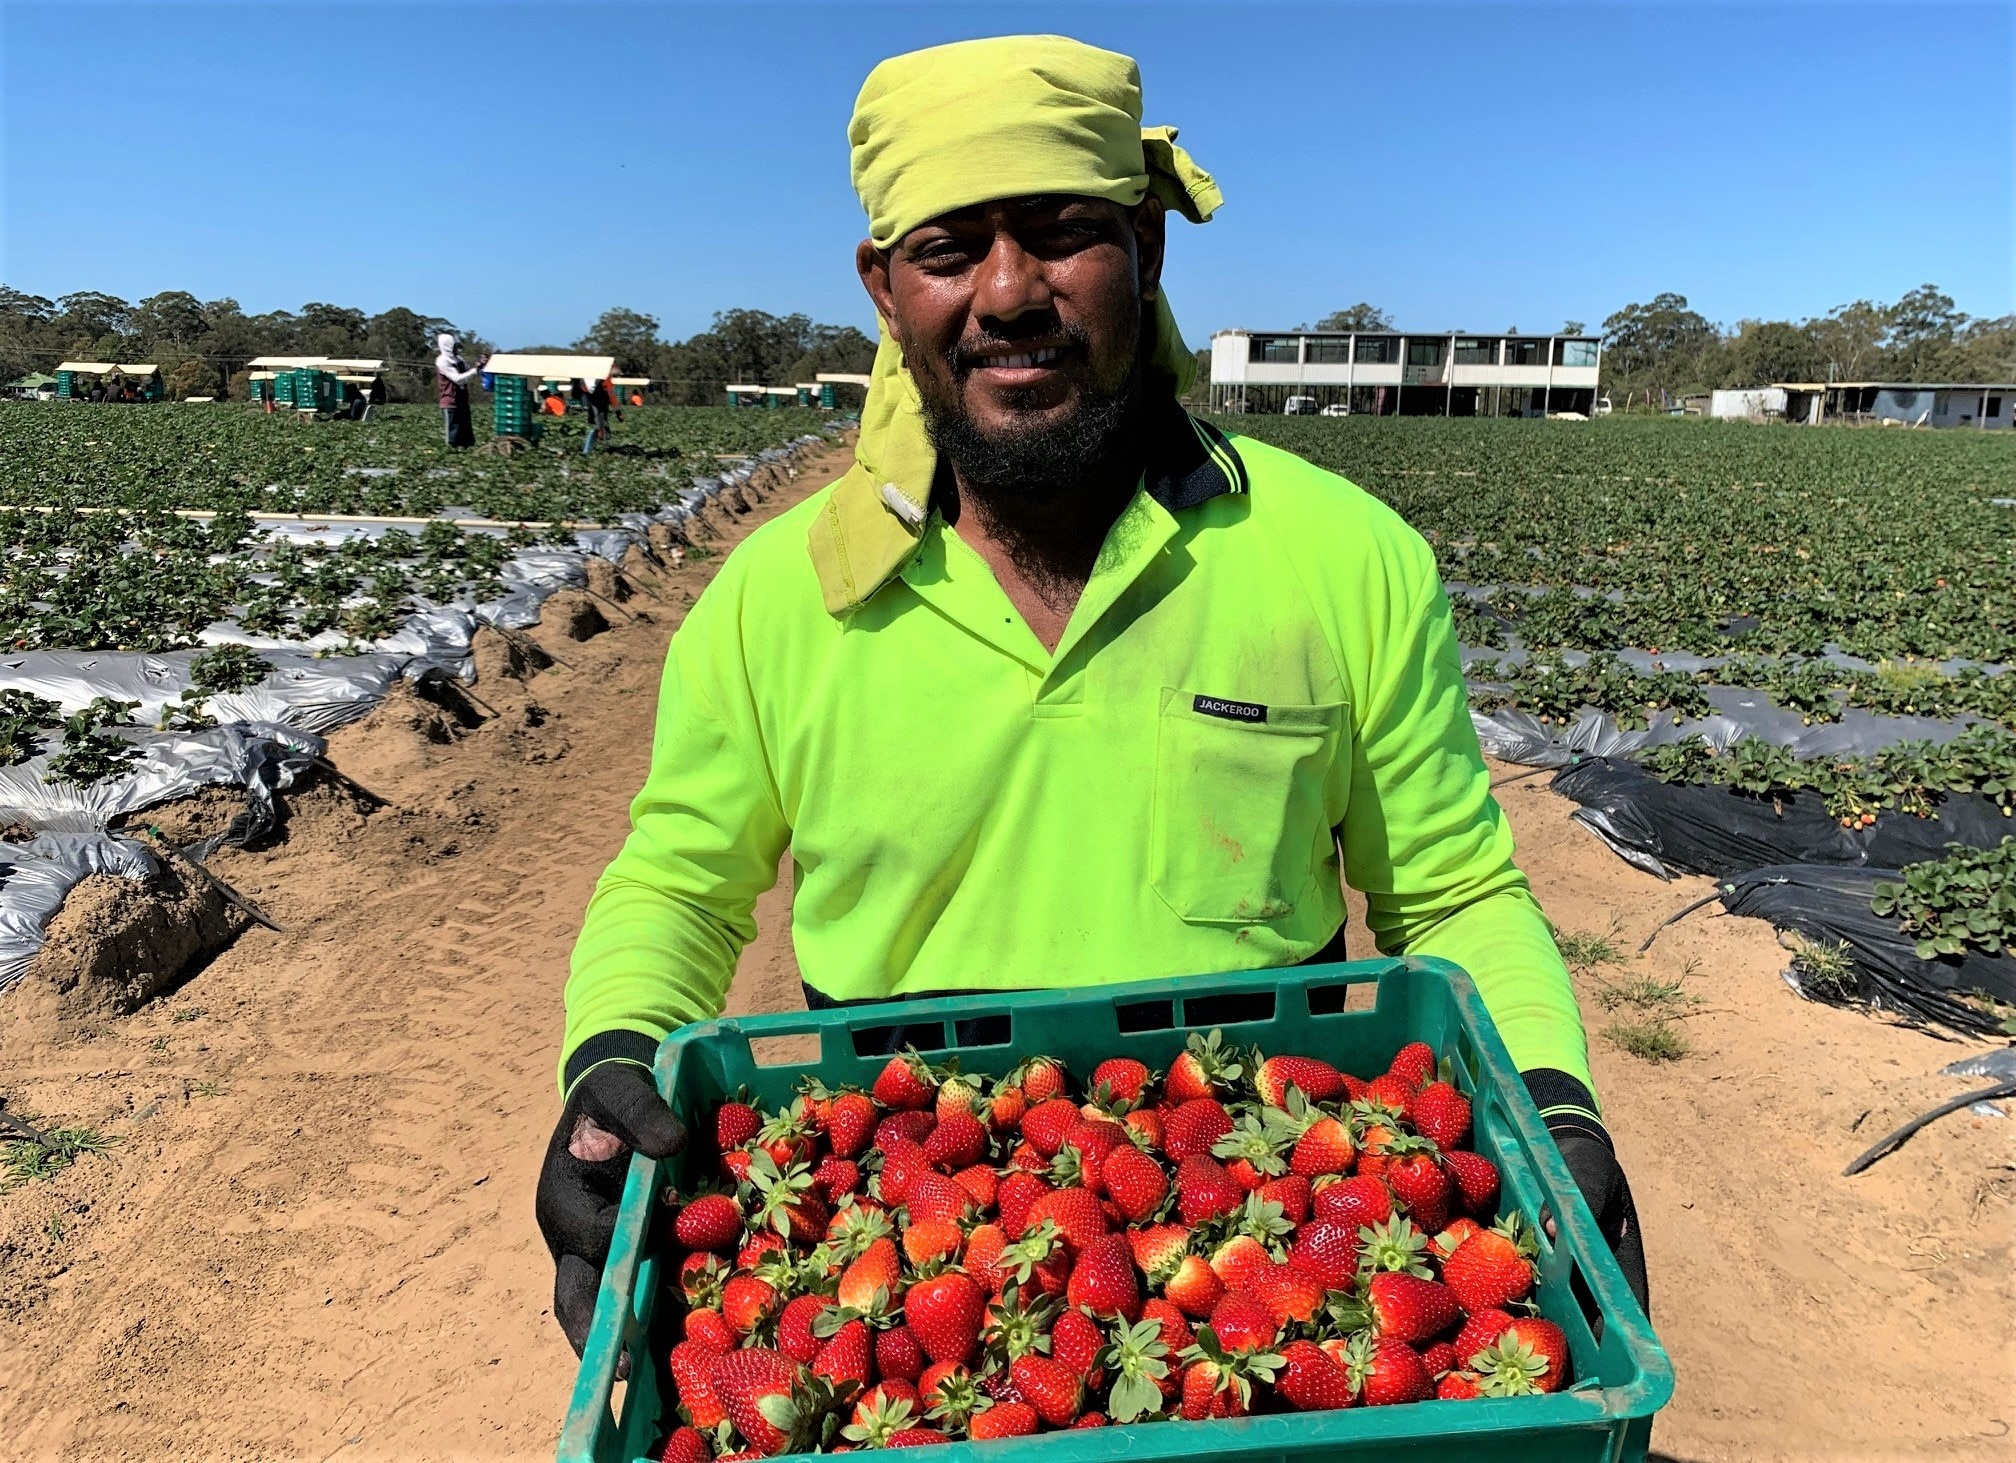 More seasonal workers are urgently needed.